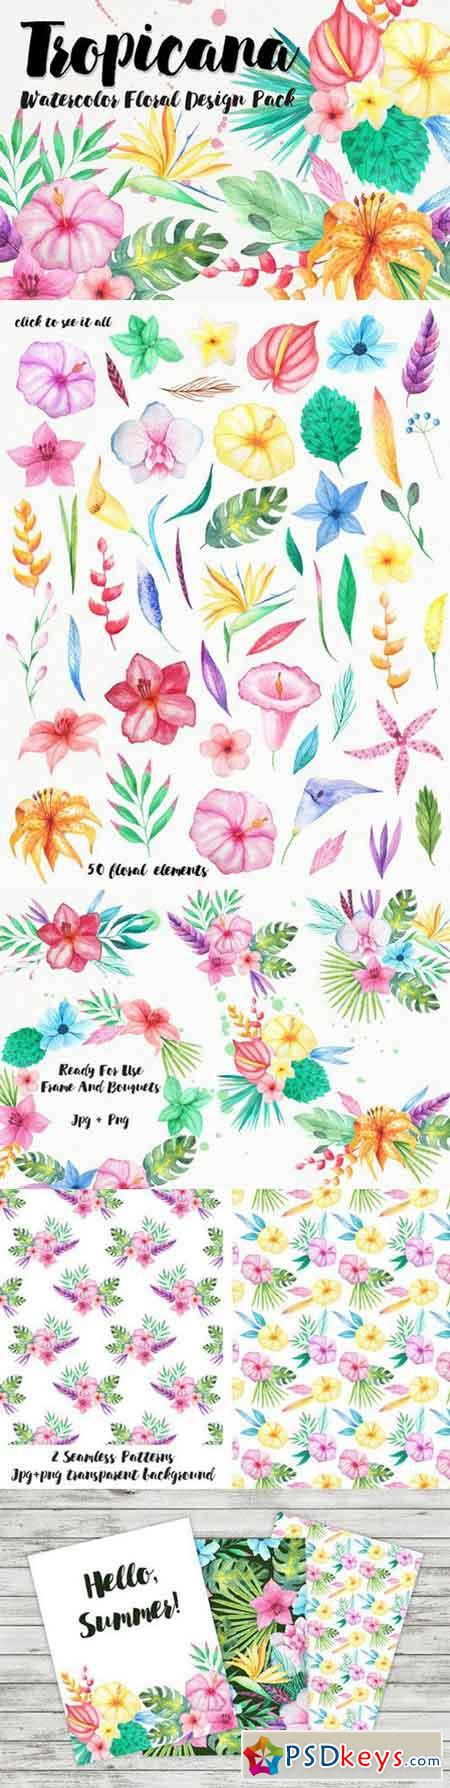 Watercolor Tropical Floral Pack 719315